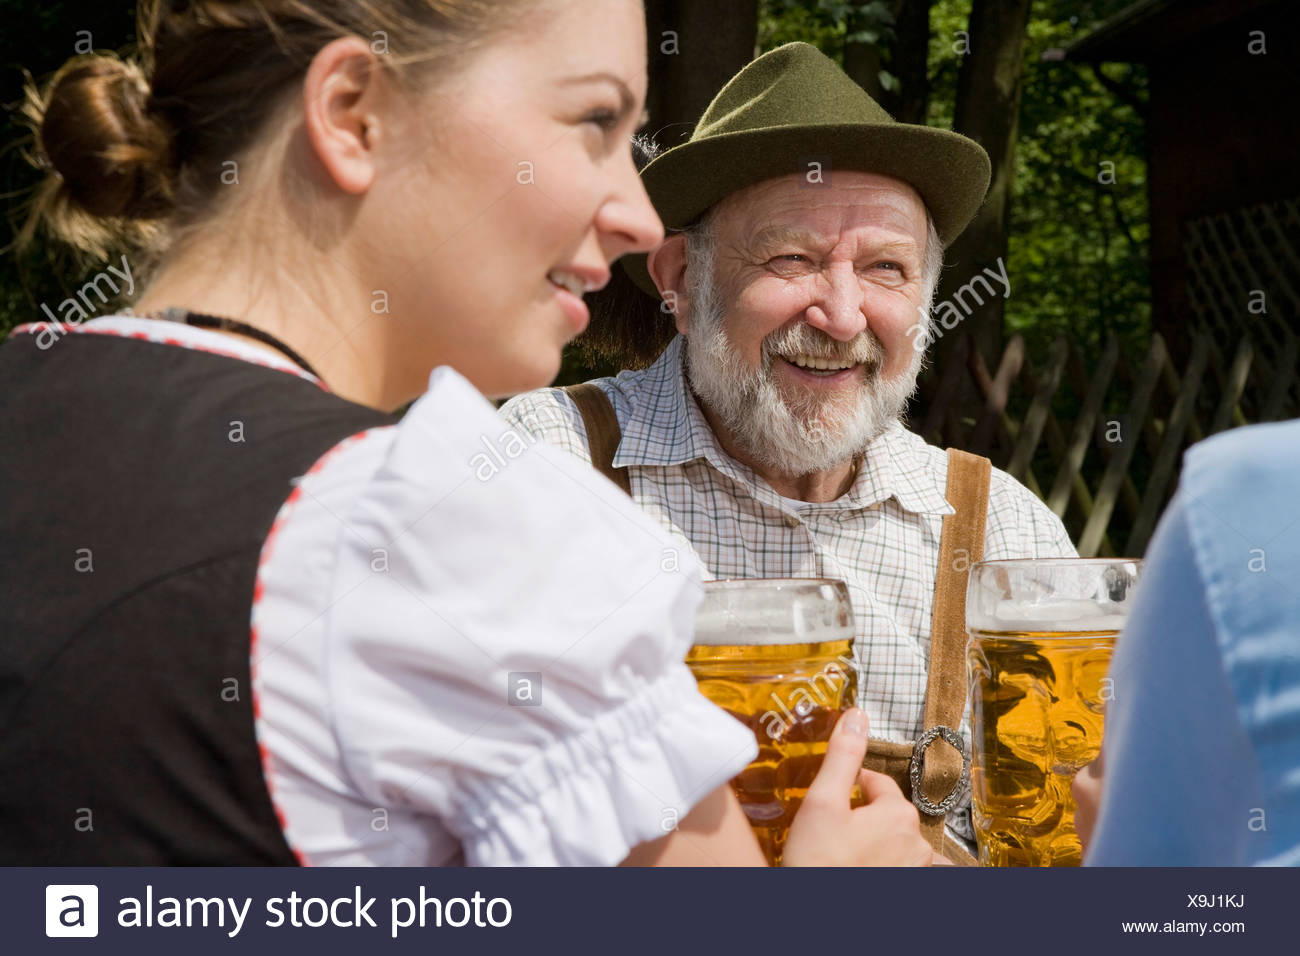 Three people in a beer garden - Stock Image